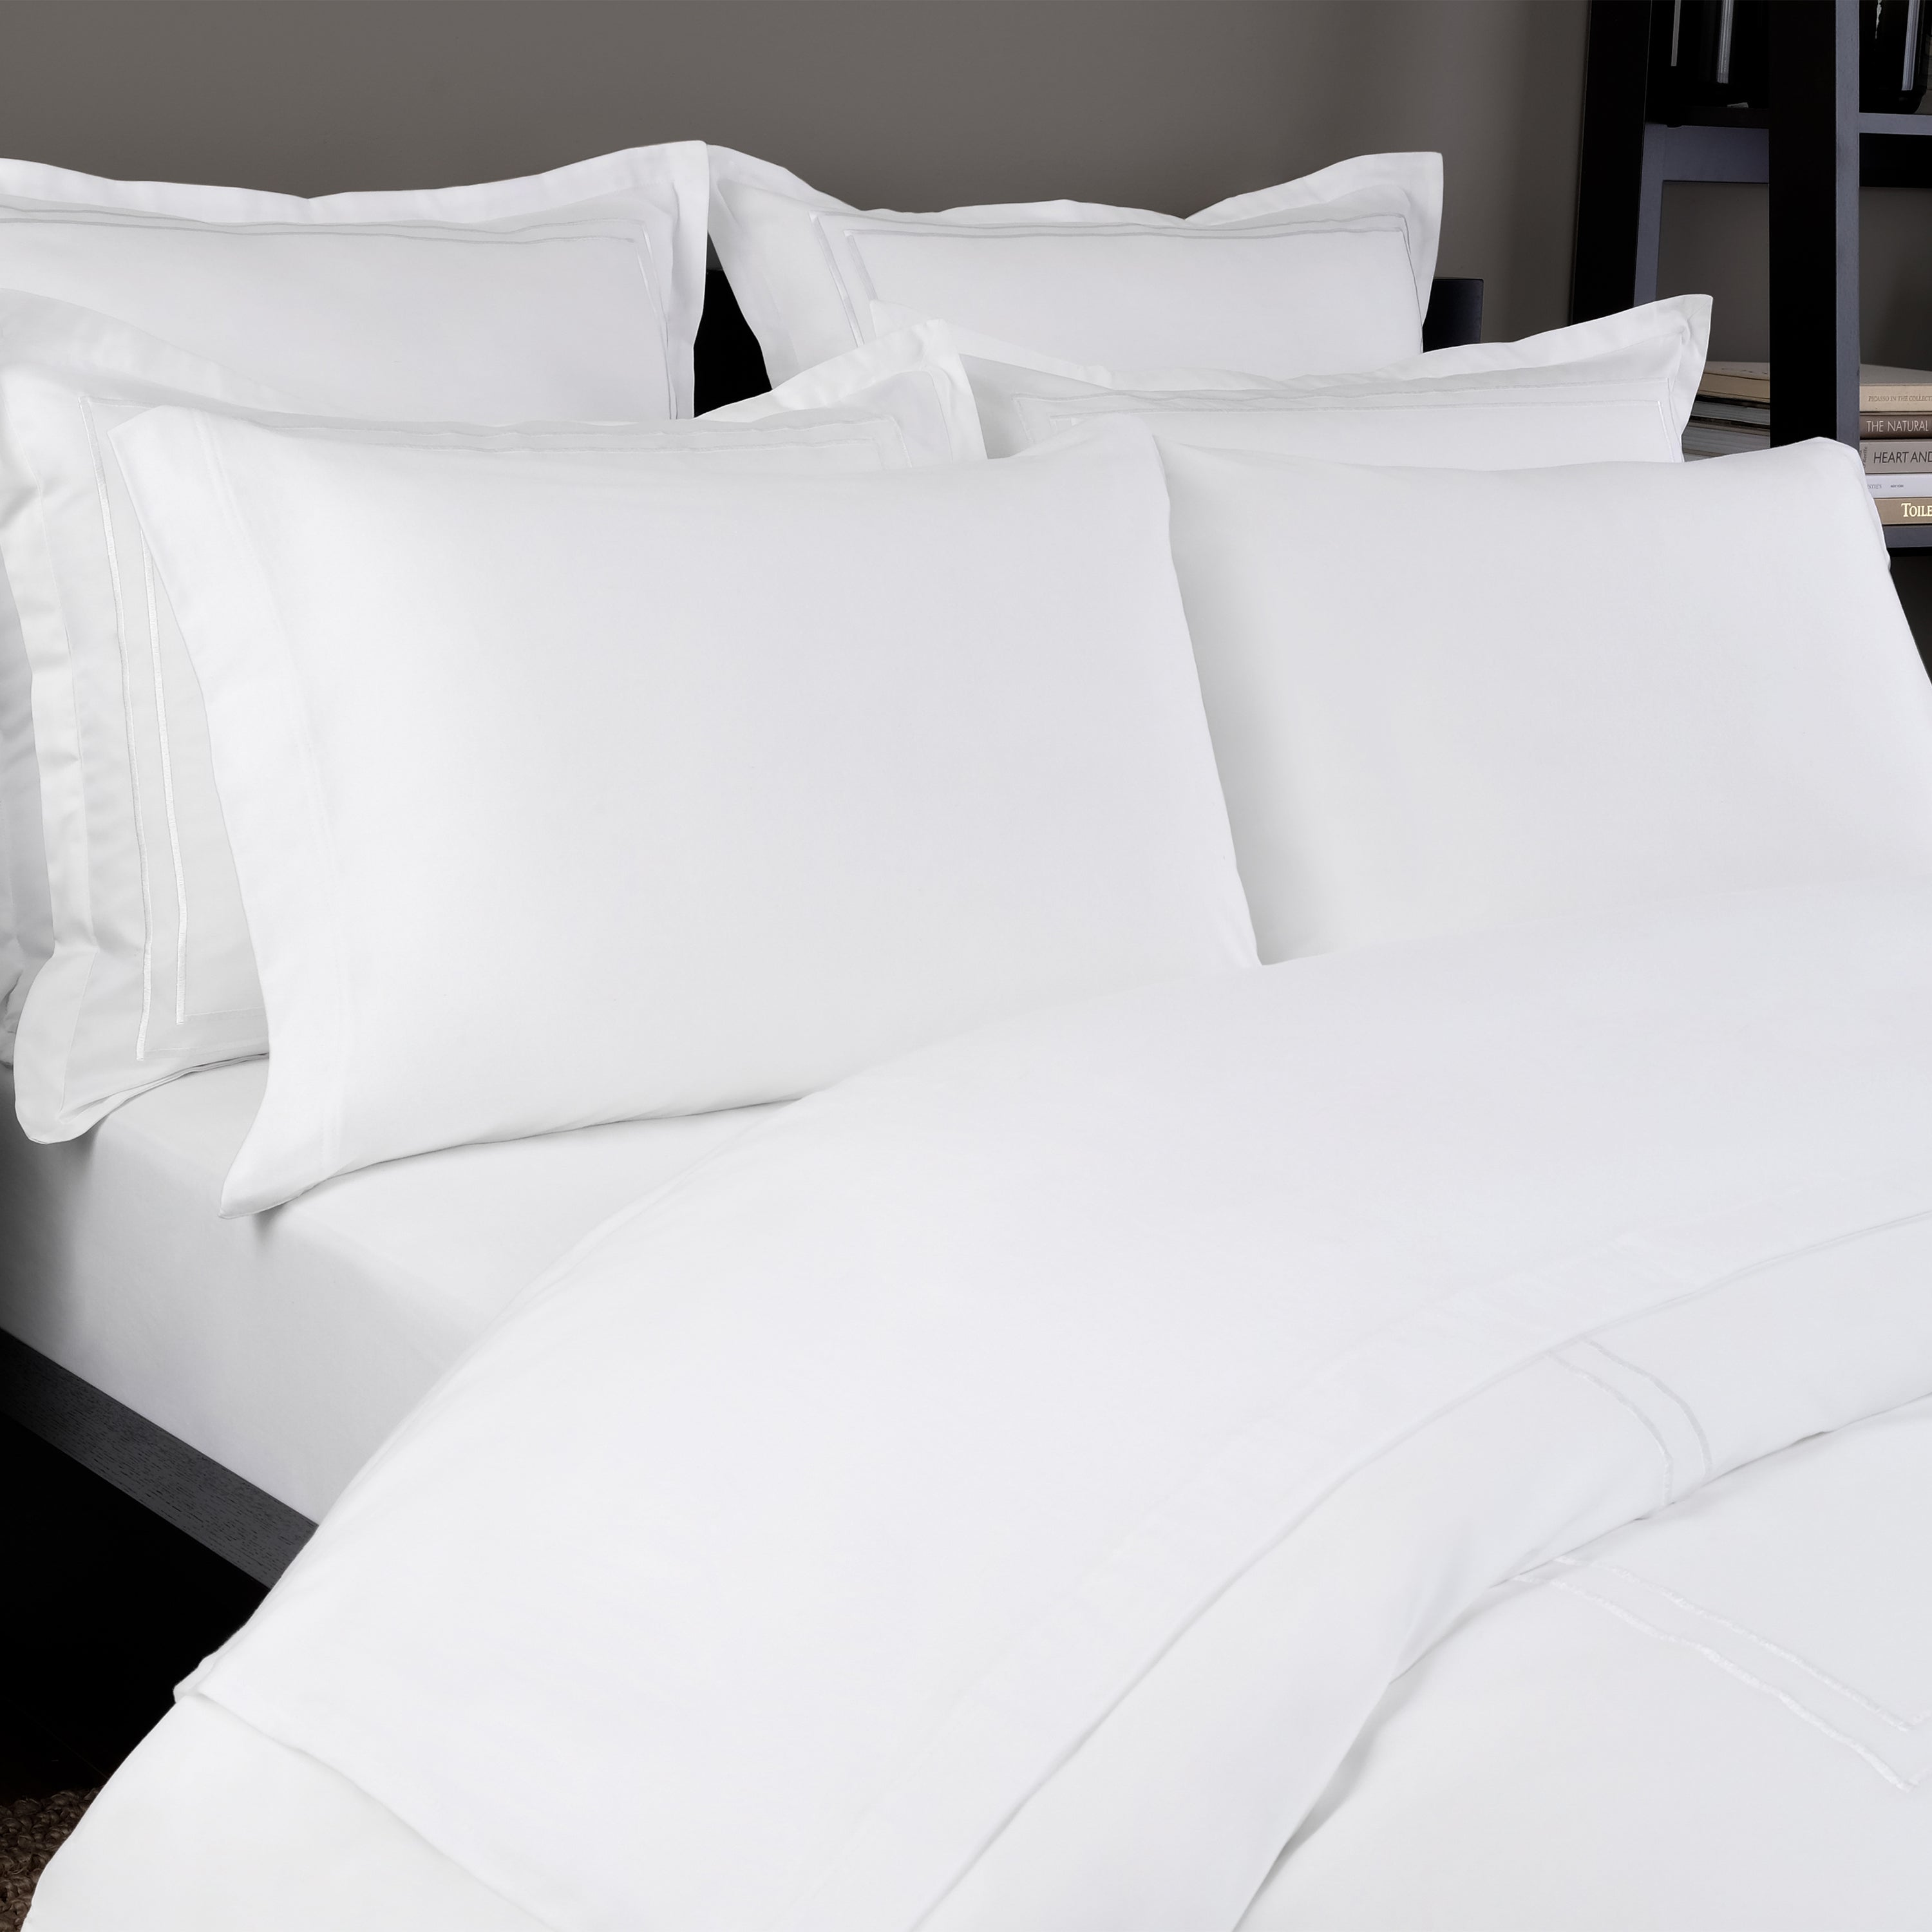 1ccea7796a Sleep all Night Naturally, In our Utterly Cozy and Comfy Jersey Sheet, 100%  Organic Cotton Fiber, Softest, Luxury Jersey Sheet Set